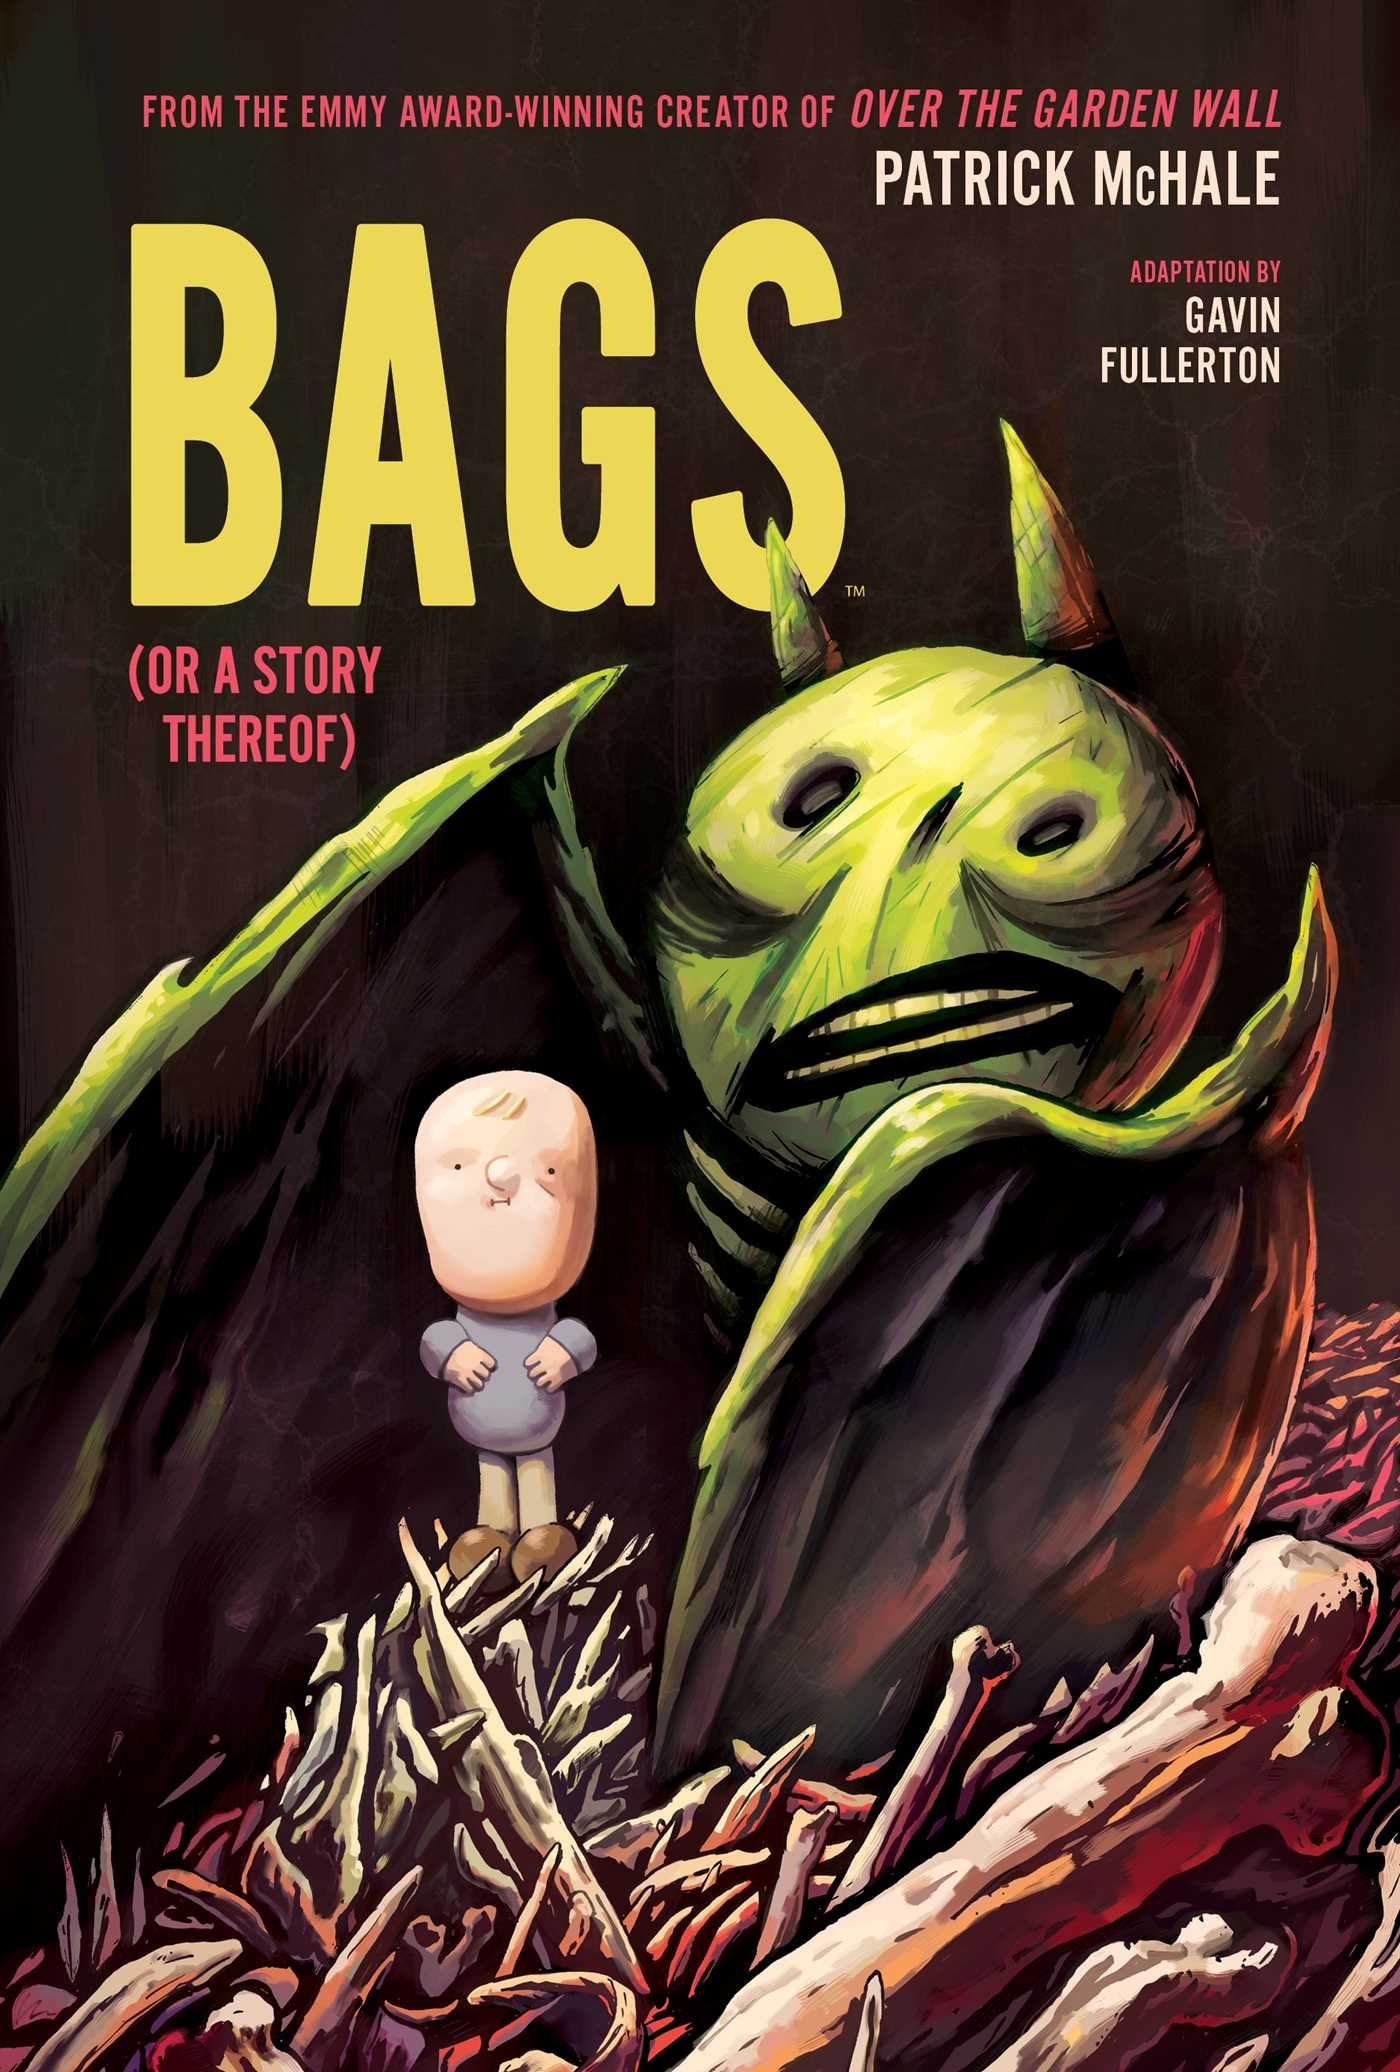 Bags (Or A Story Thereof) is my first graphic novel from Boom! Studios. Adapted from the short story of the same name by Patrick McHale (Over the Garden Wall). It's about a man called John Motts, who goes in search of his missing dog.